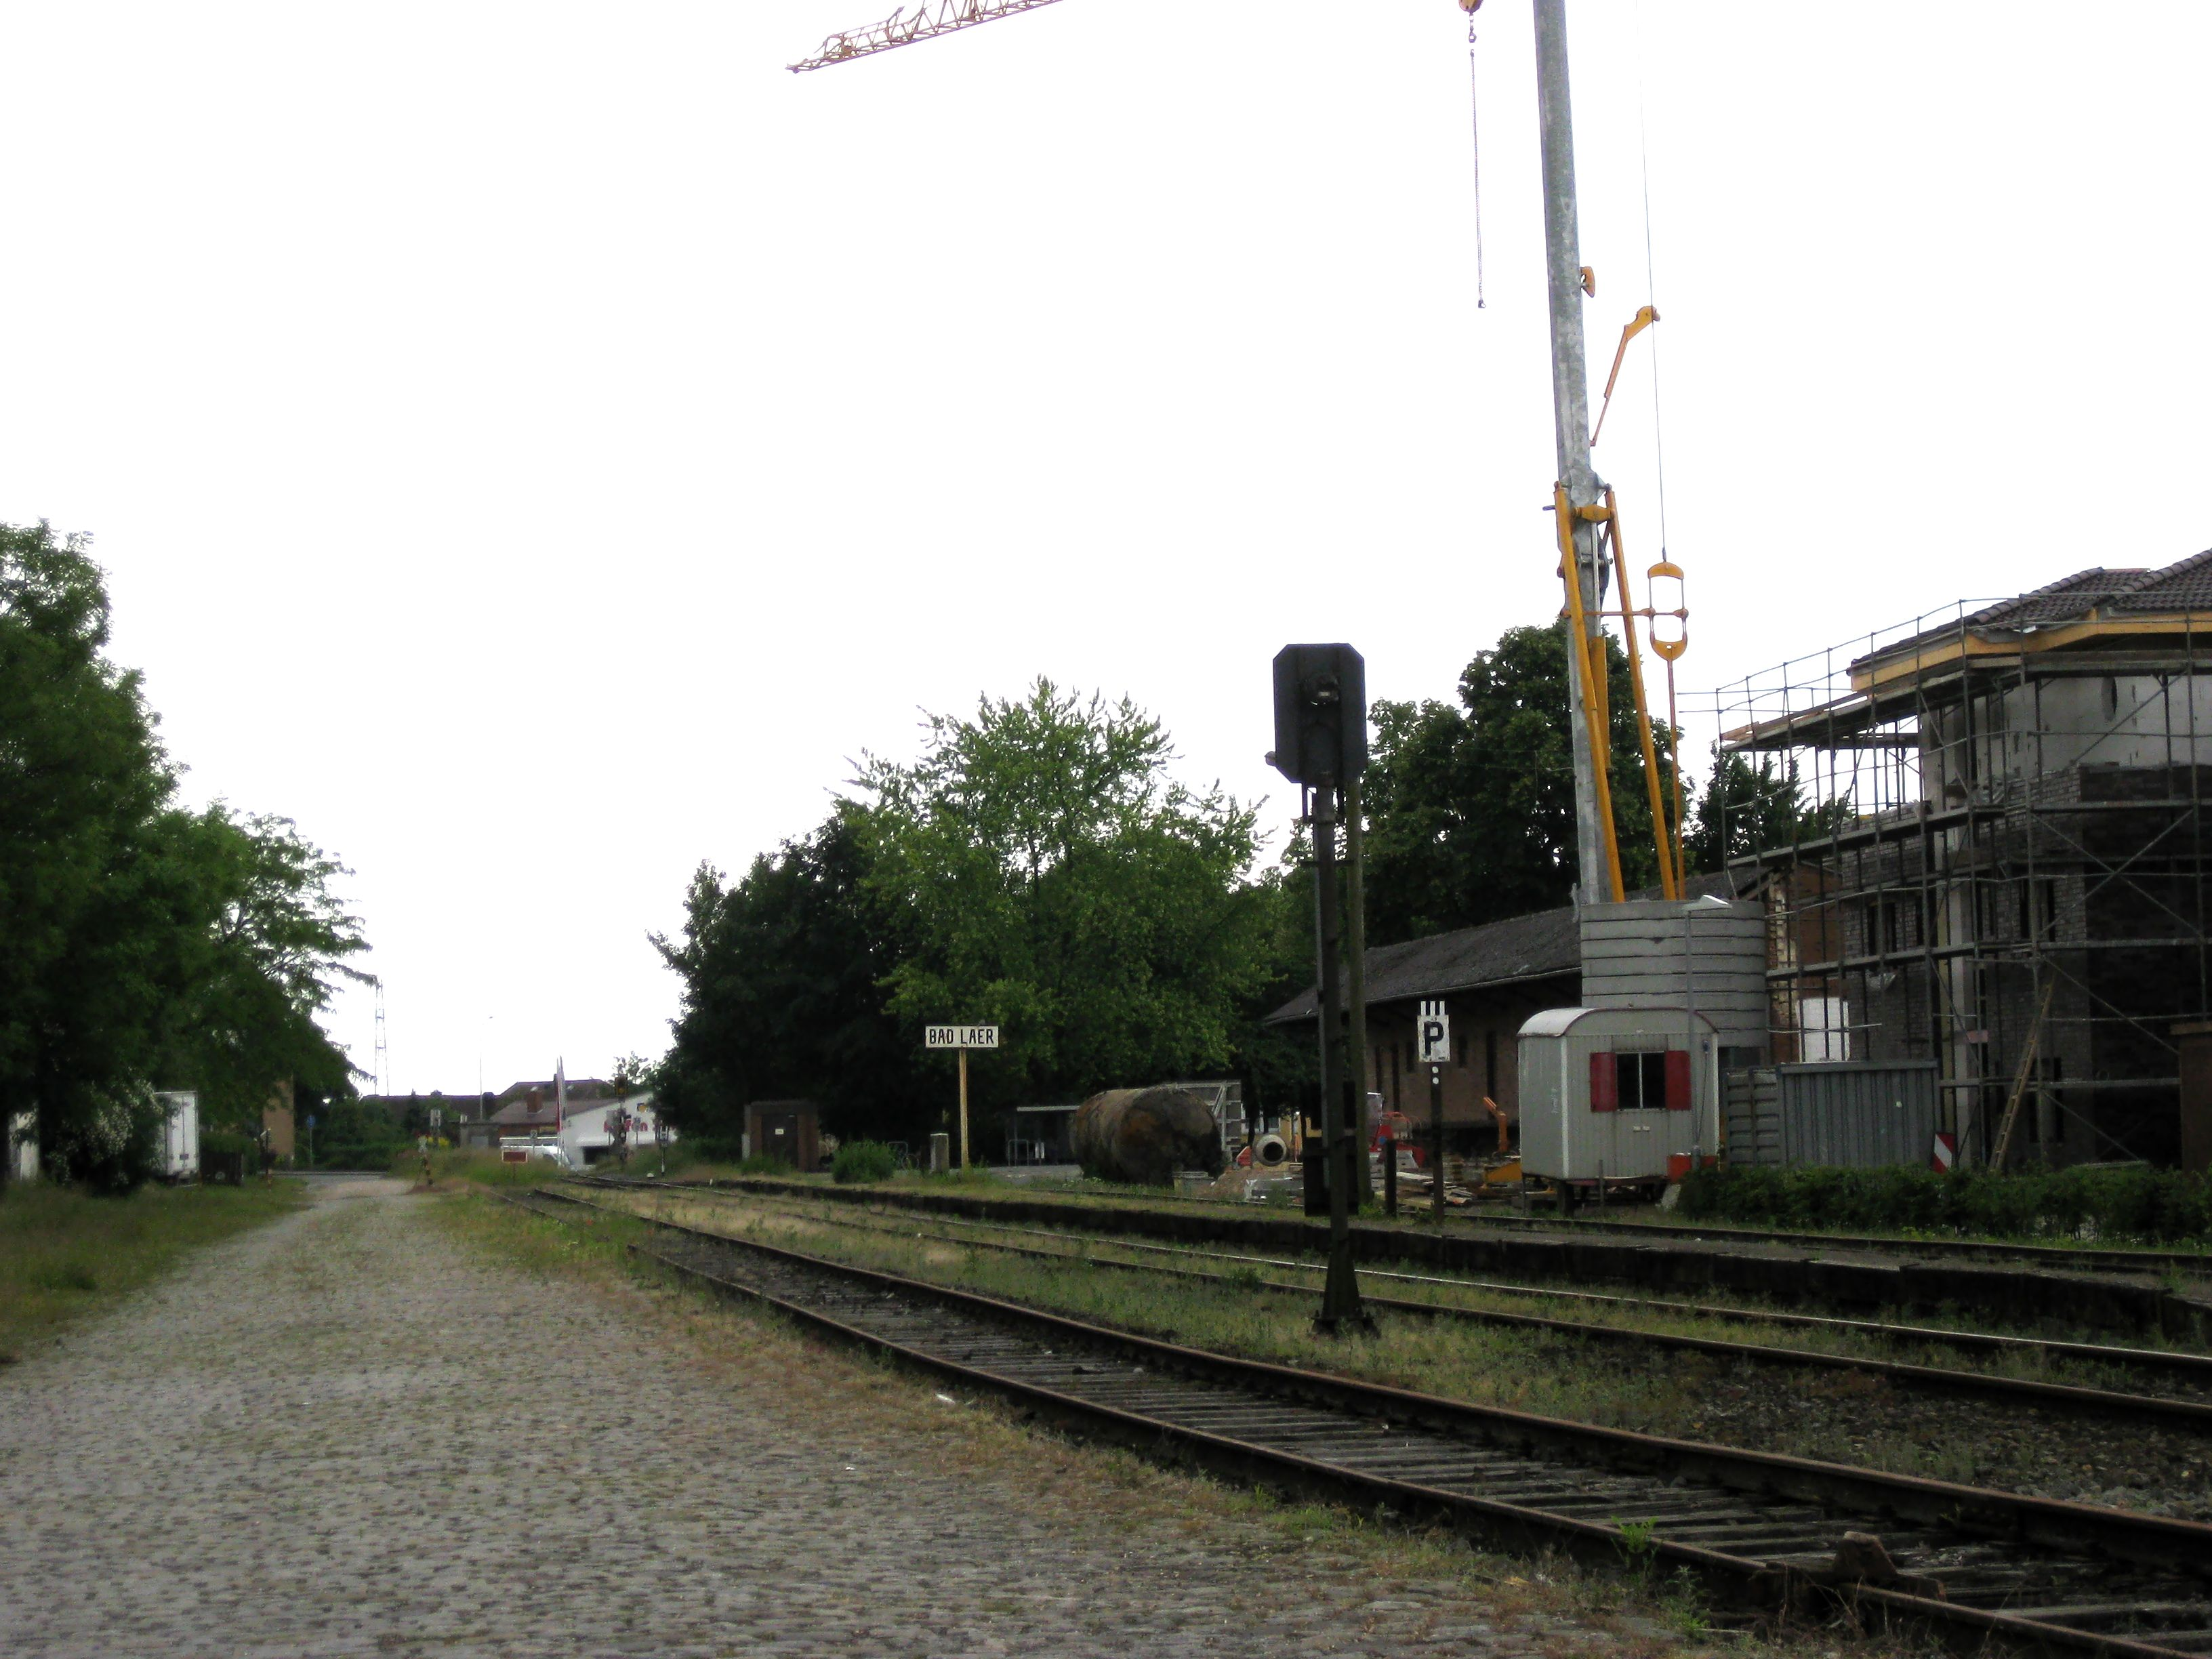 File Bad Laer Bahnhof Jpg Wikimedia Commons - Bad Laer